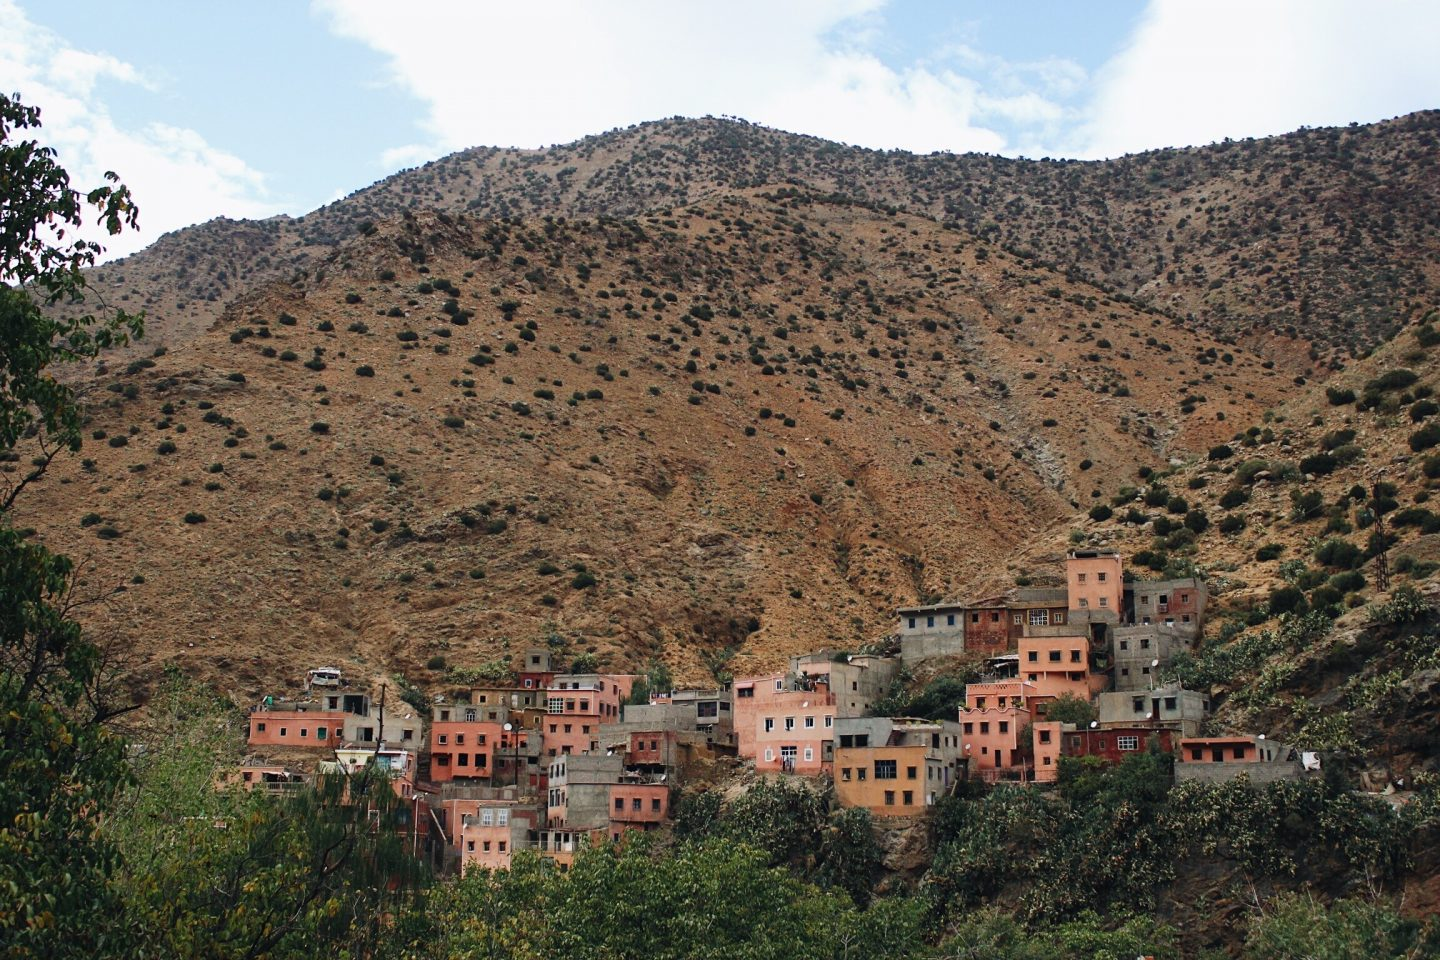 Photo of a Berber village in the Ourika mountains